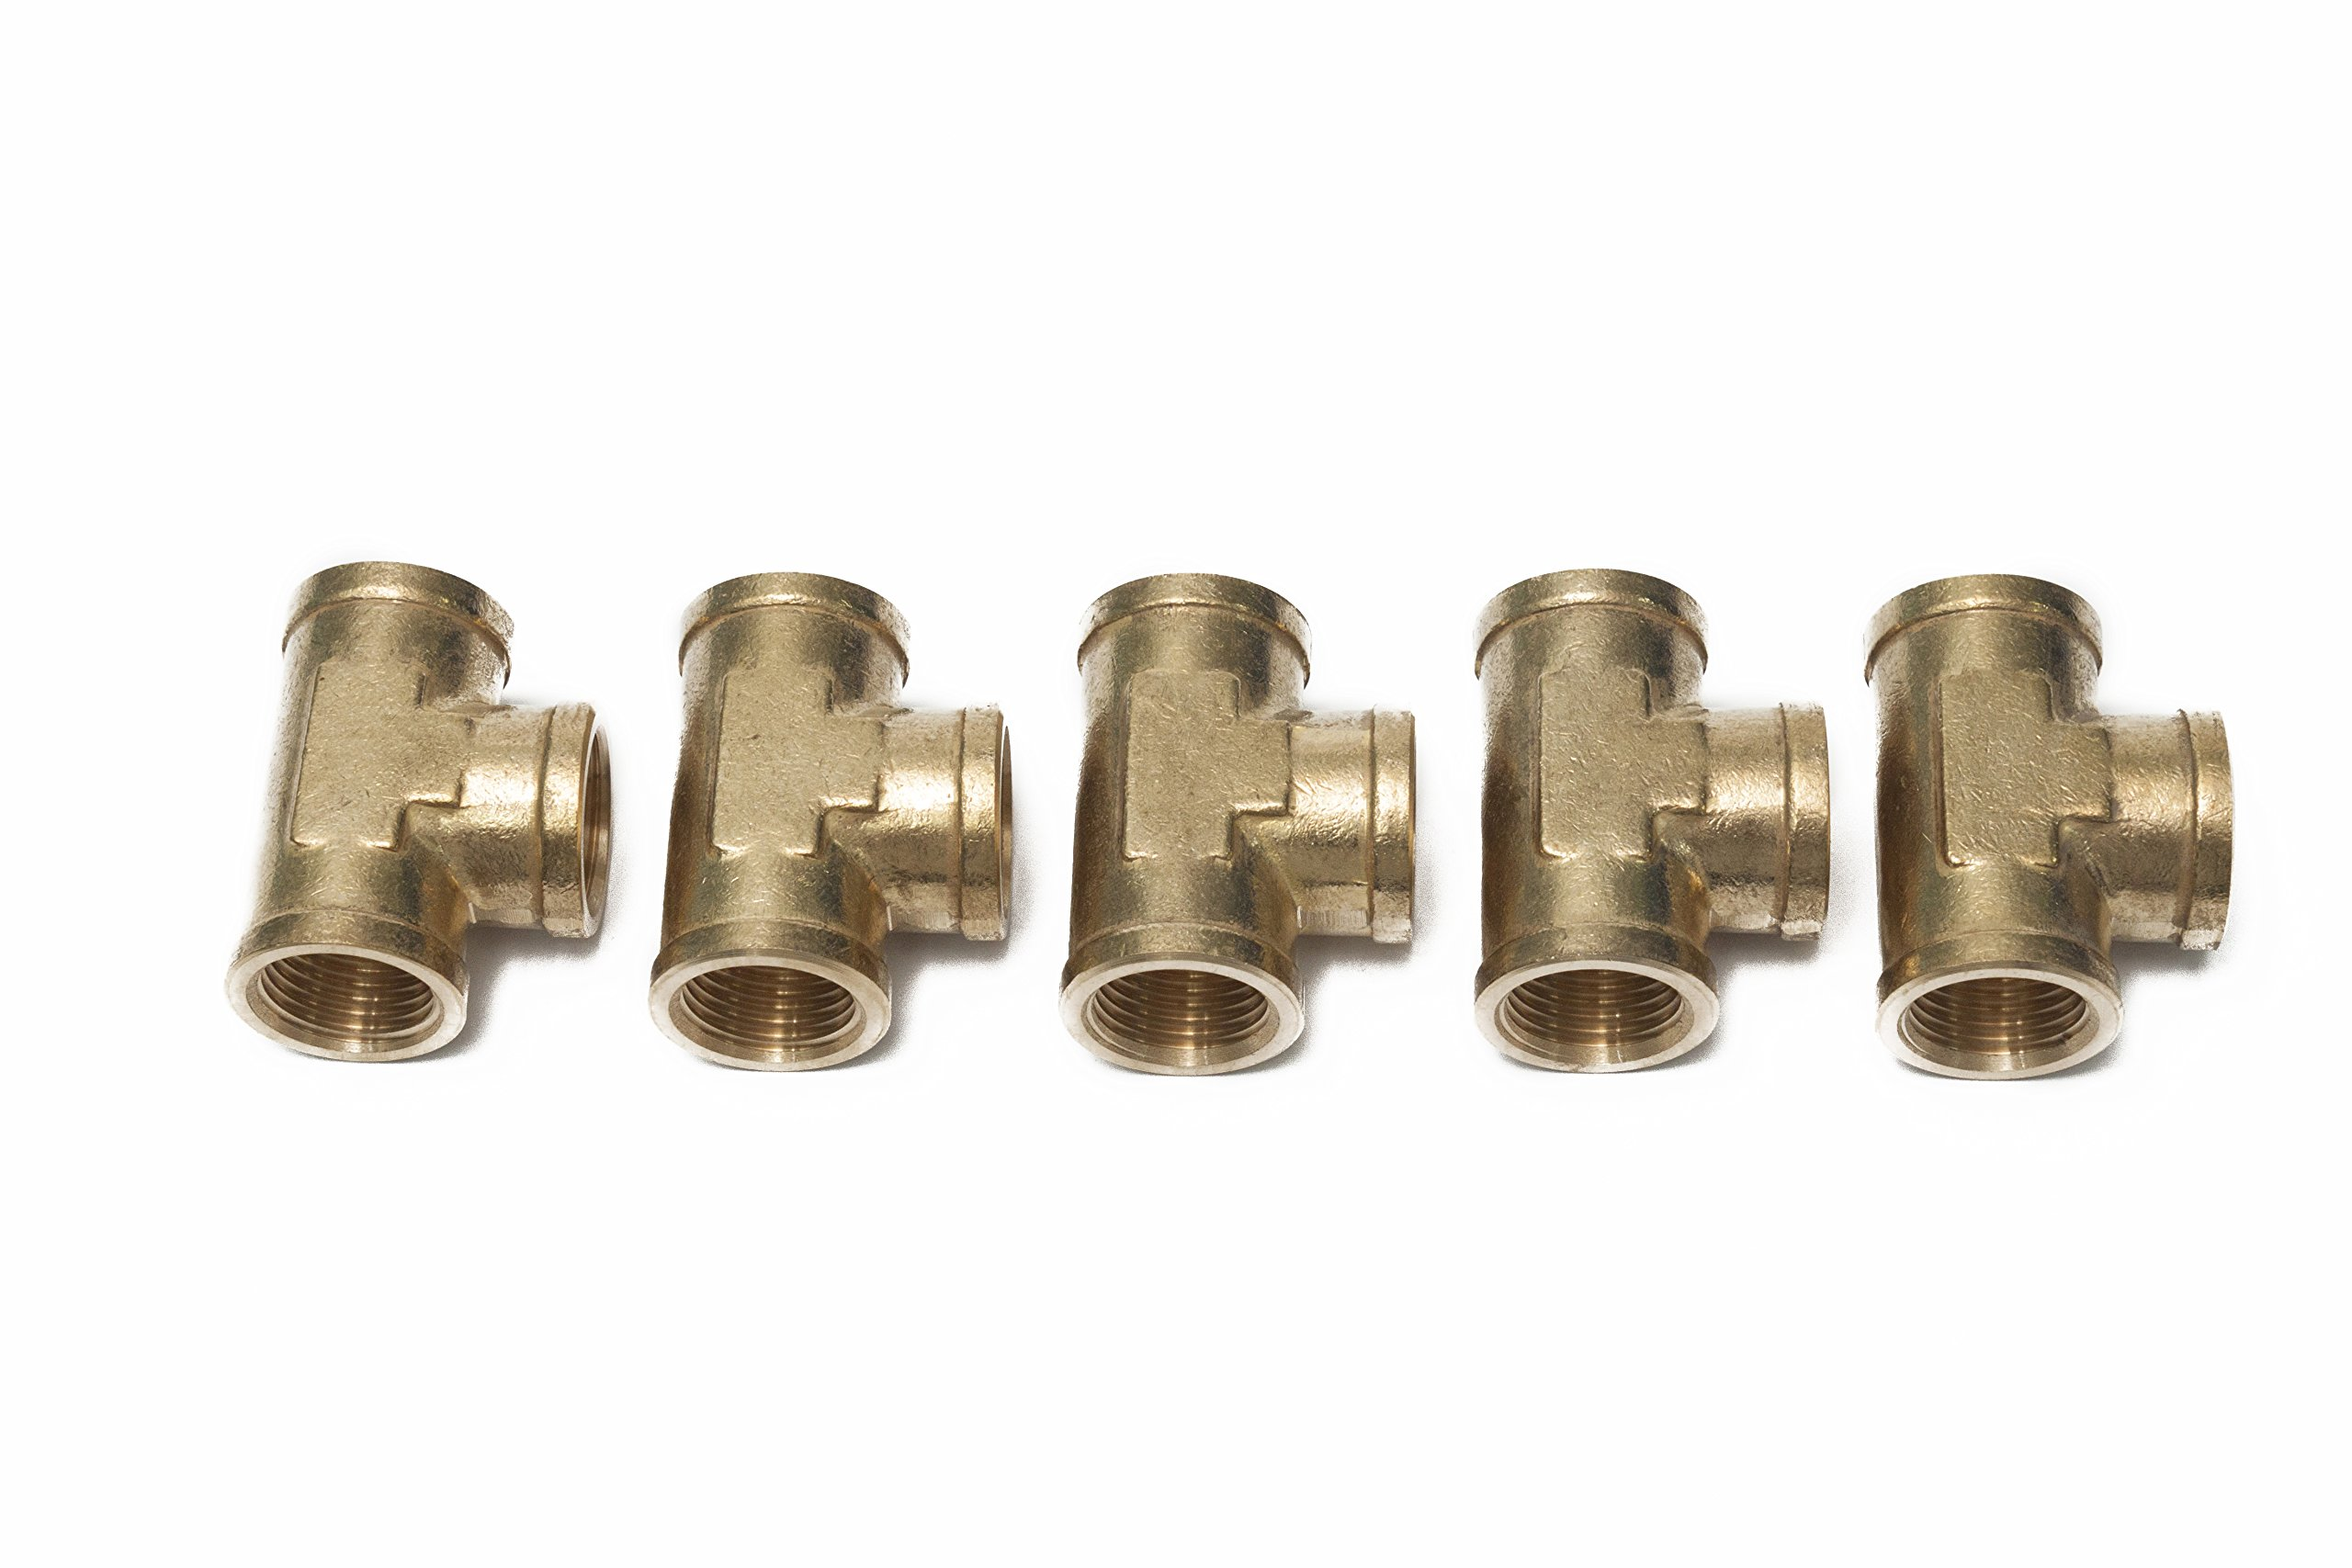 Generic Brass Pipe Fitting 1/2'' Female NPT Thread Tee Fuel Air(Pack of 5)